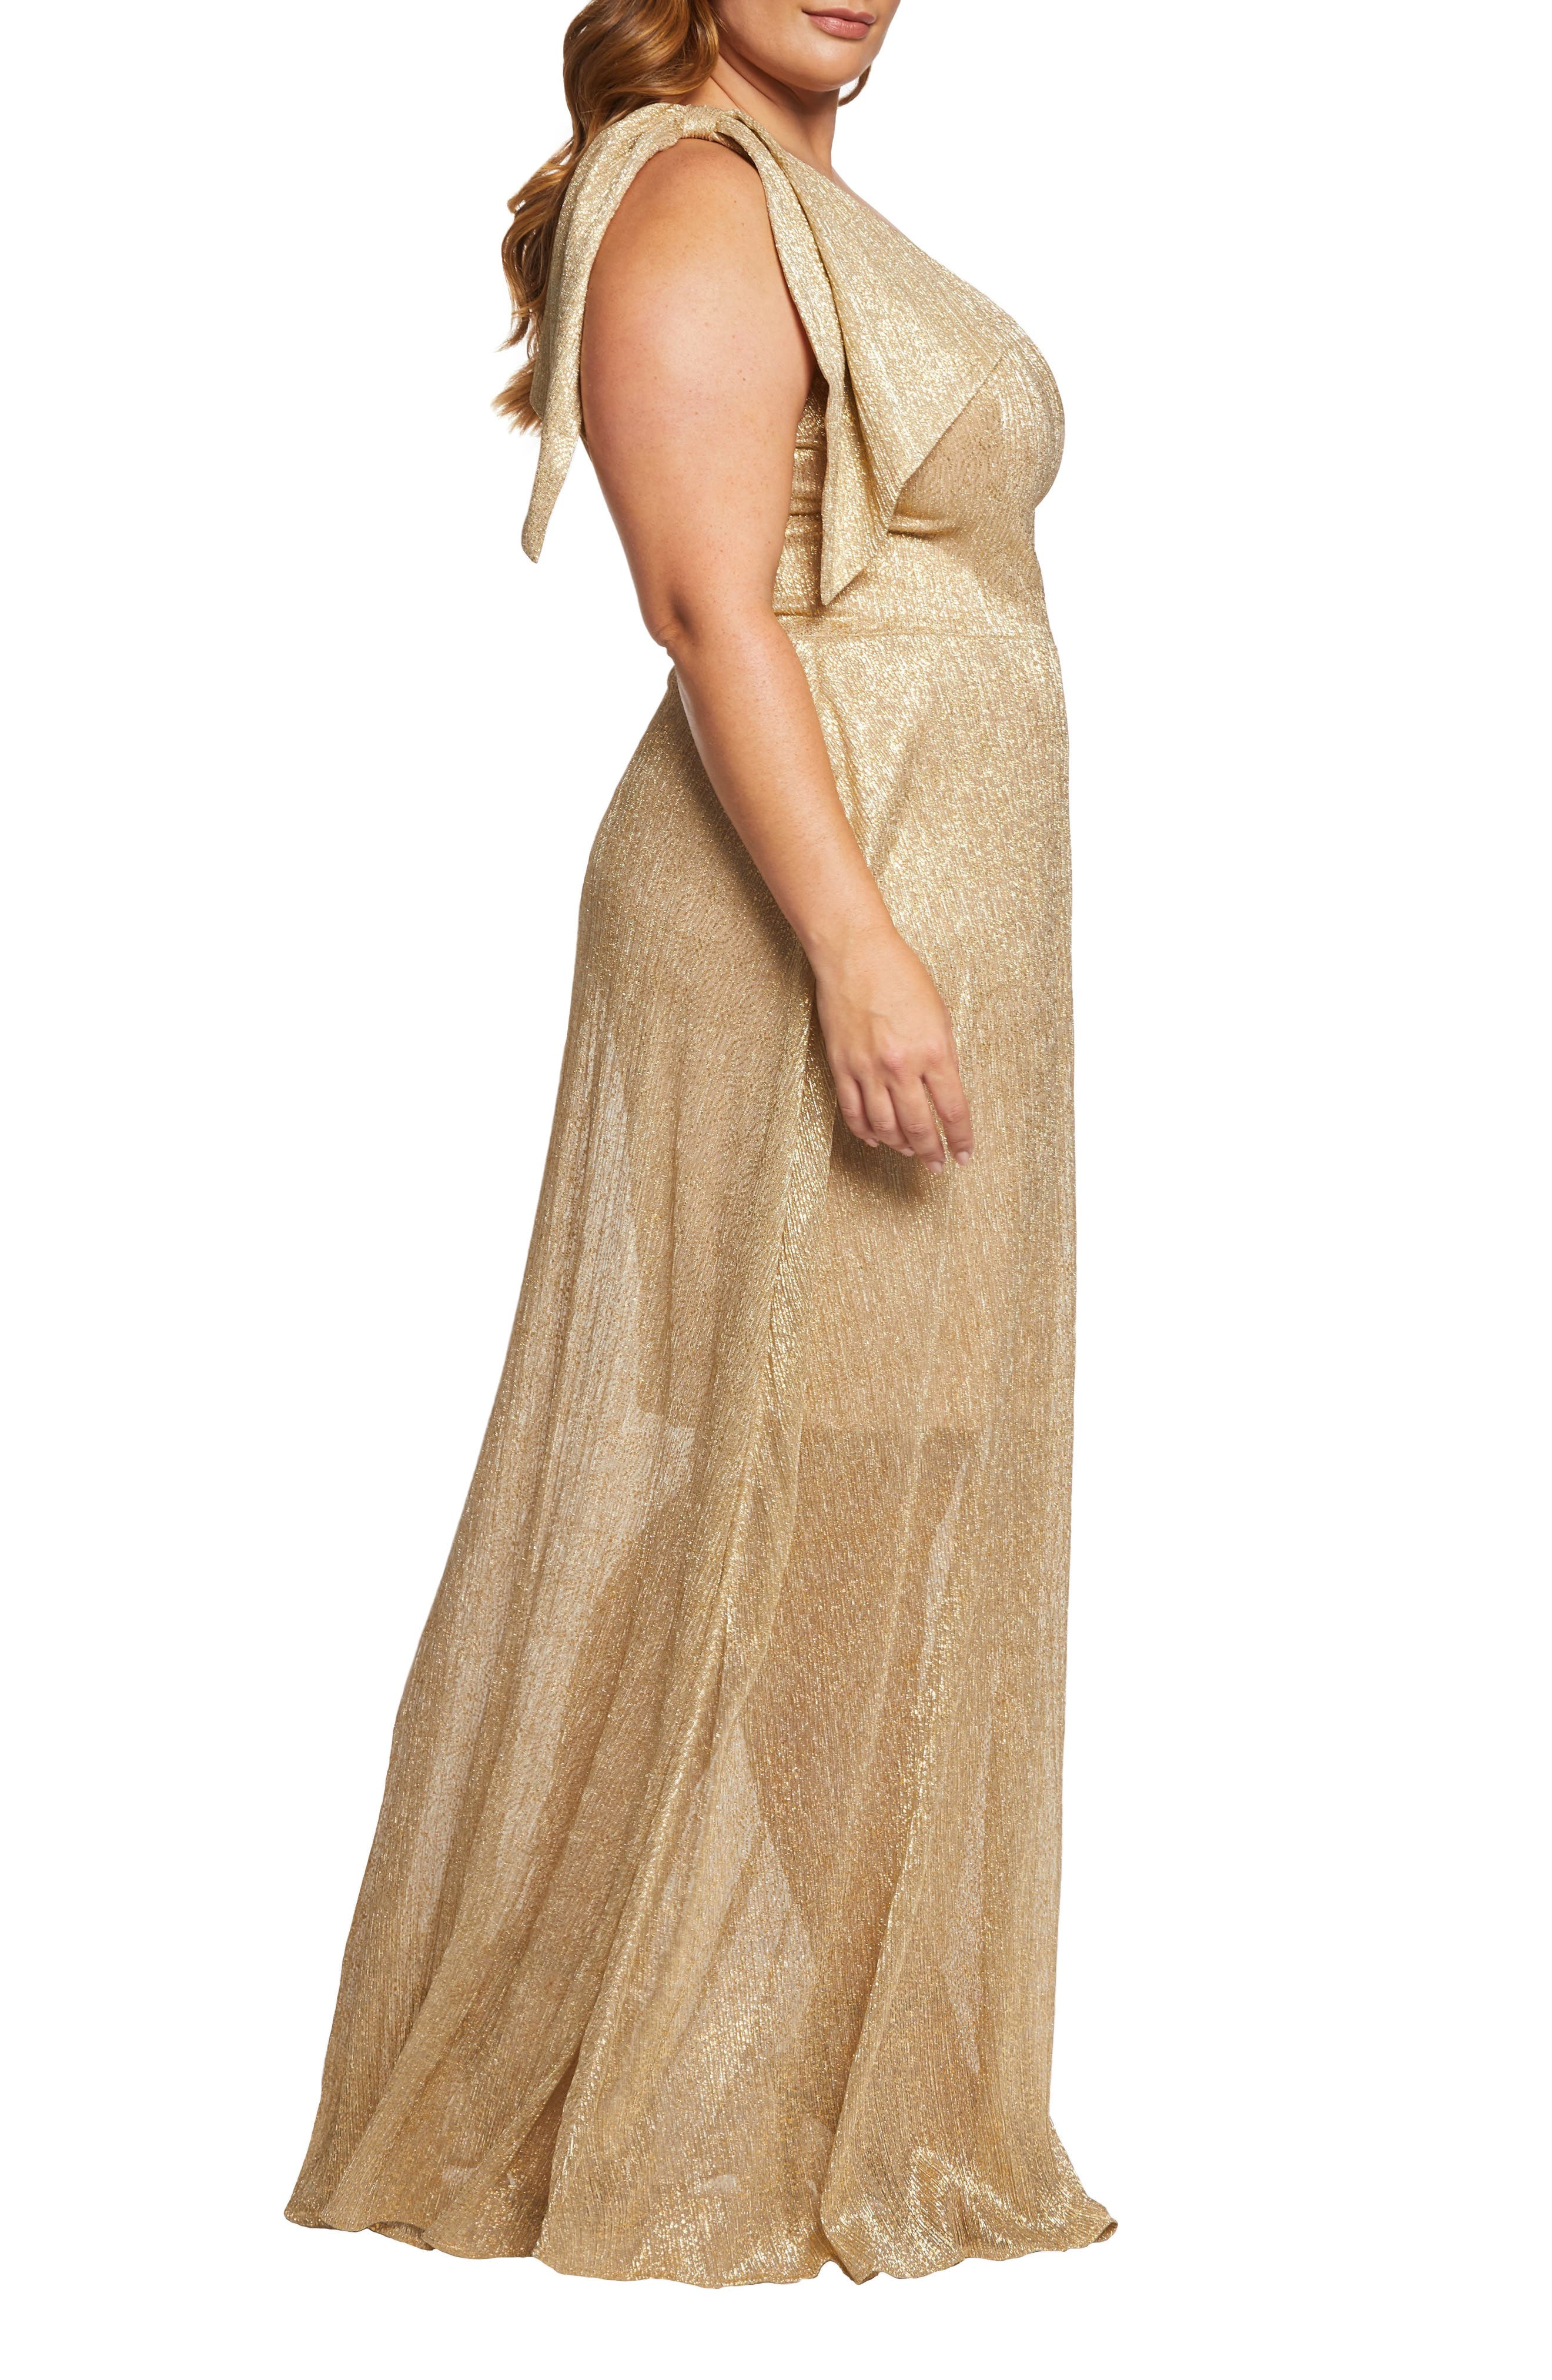 DRESS THE POPULATION, Savannah One-Shoulder Gown, Alternate thumbnail 3, color, GOLD